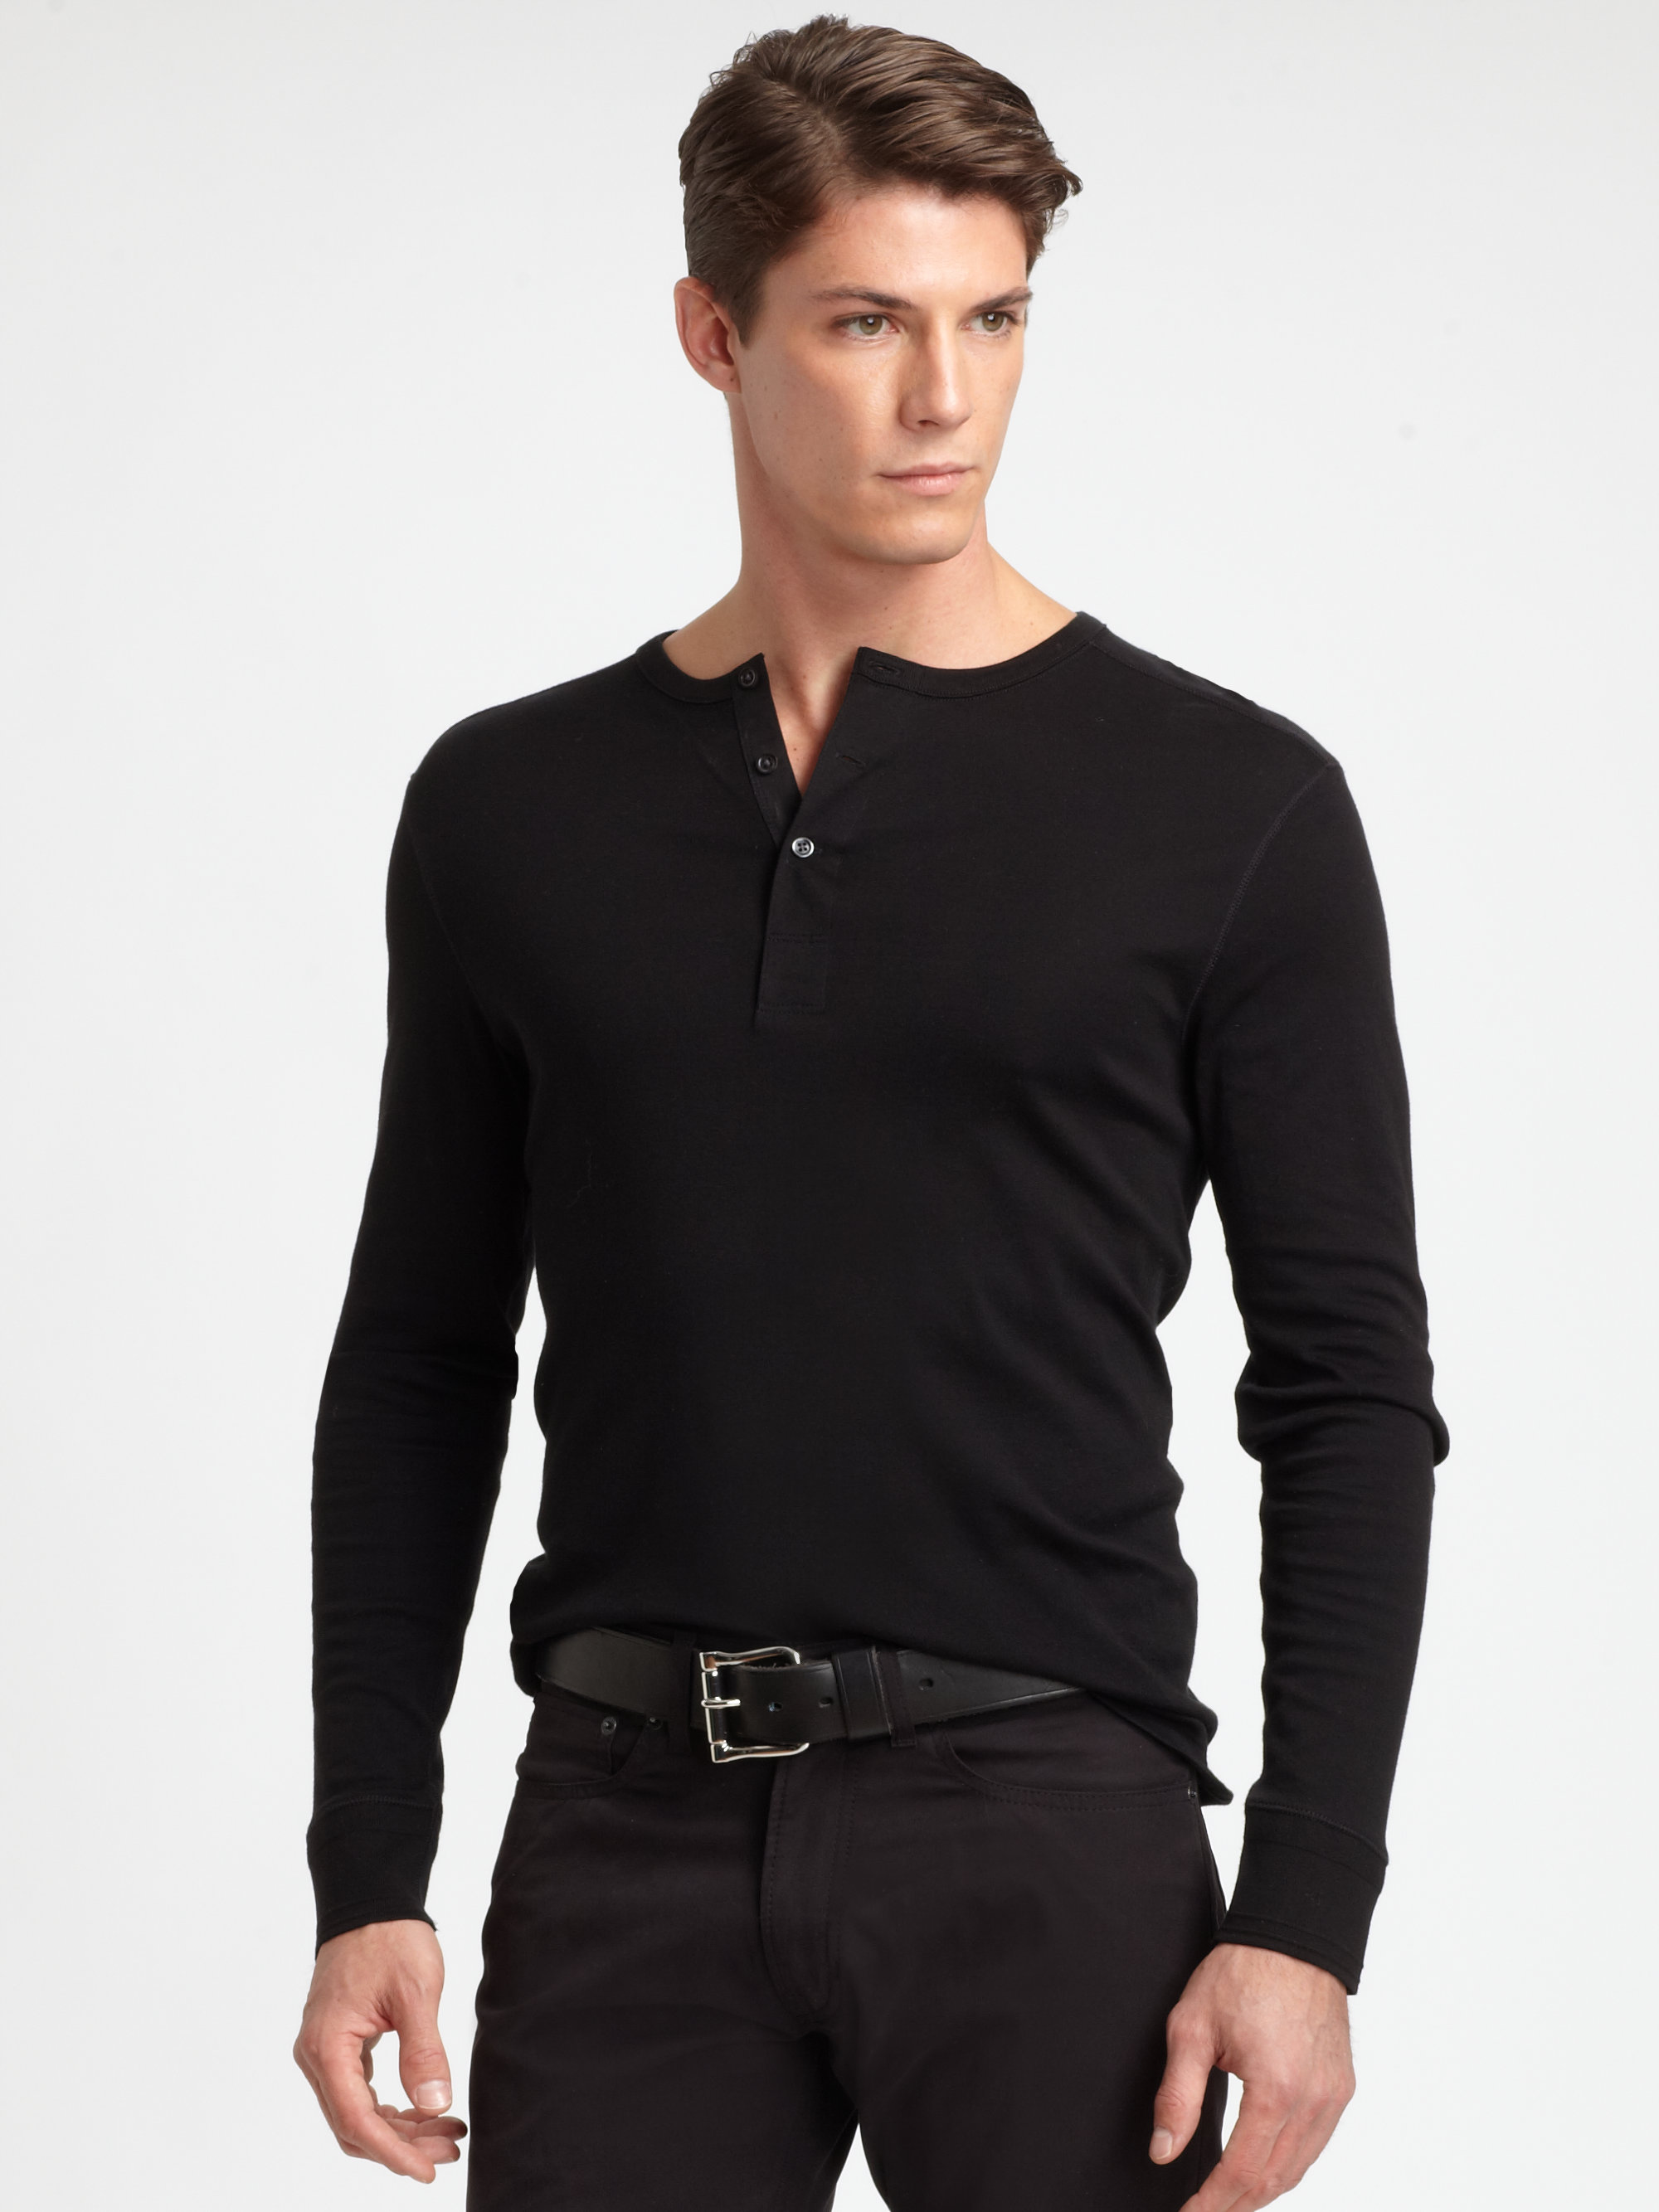 Shop online for Men's Henley Long Sleeve & T-Shirts at hereuloadu5.ga Find cotton, linen & knit blends. Free Shipping. Free Returns. All the time.